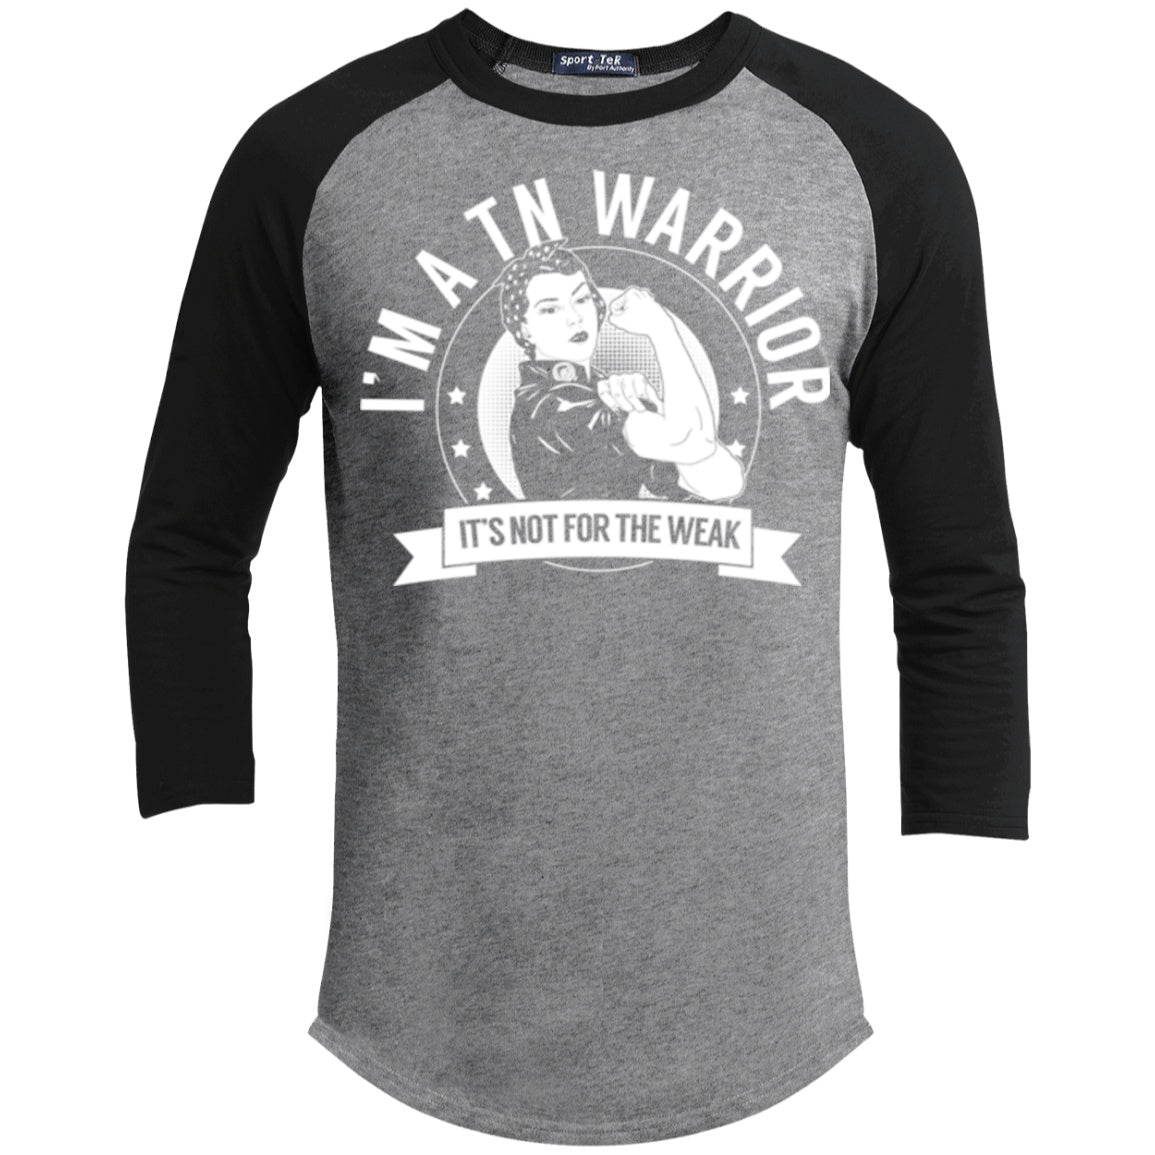 Trigeminal Neuralgia - TN Warrior Not For The Weak Baseball Shirt - The Unchargeables